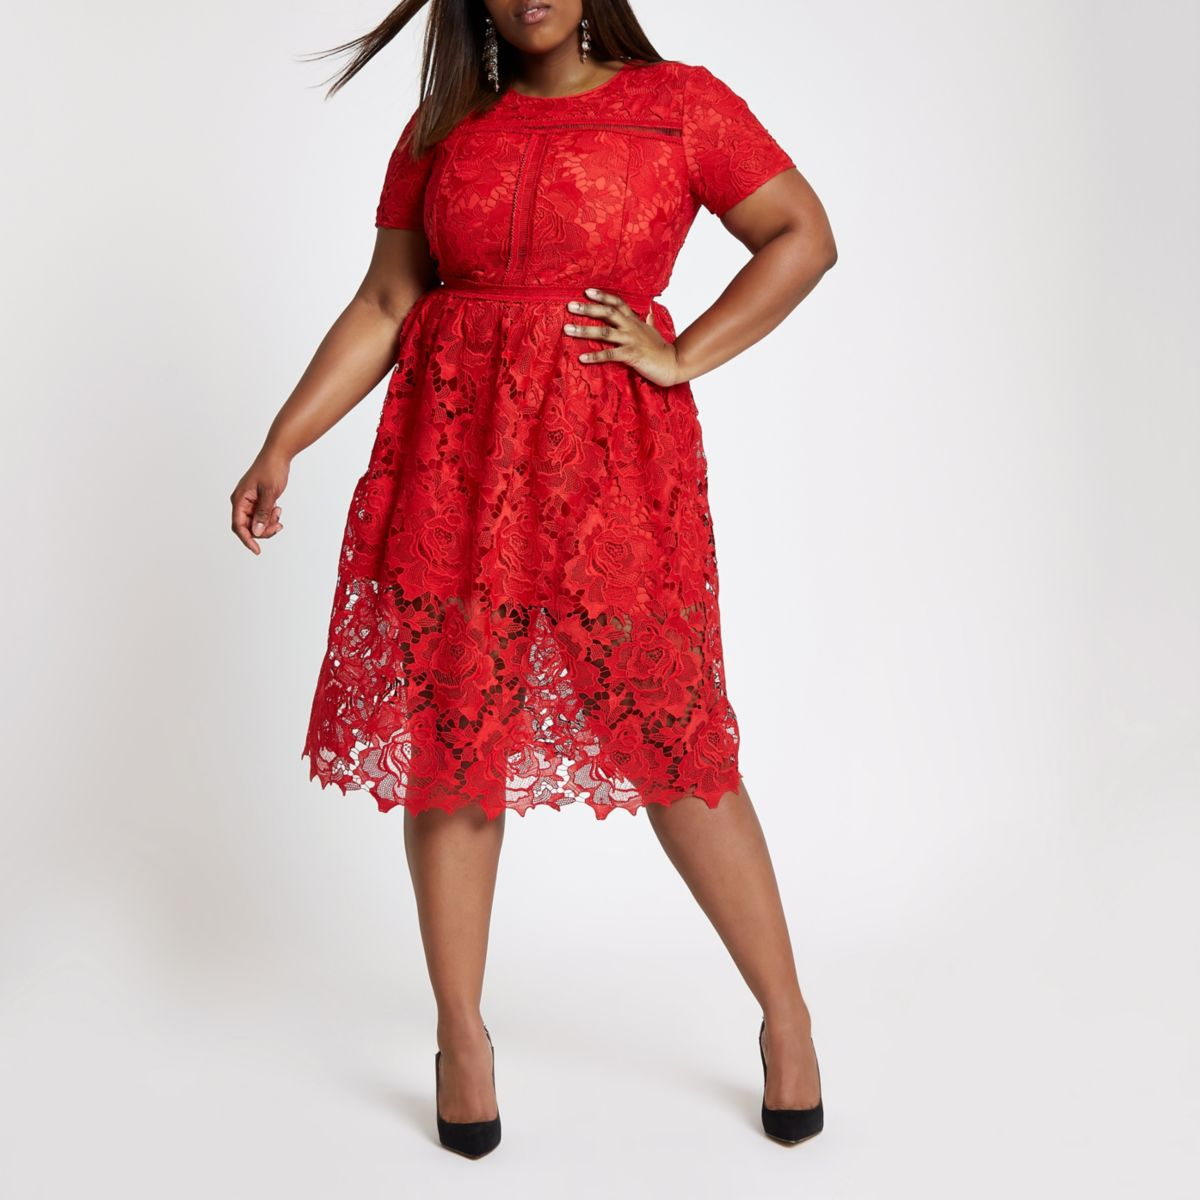 Red lace midi dress